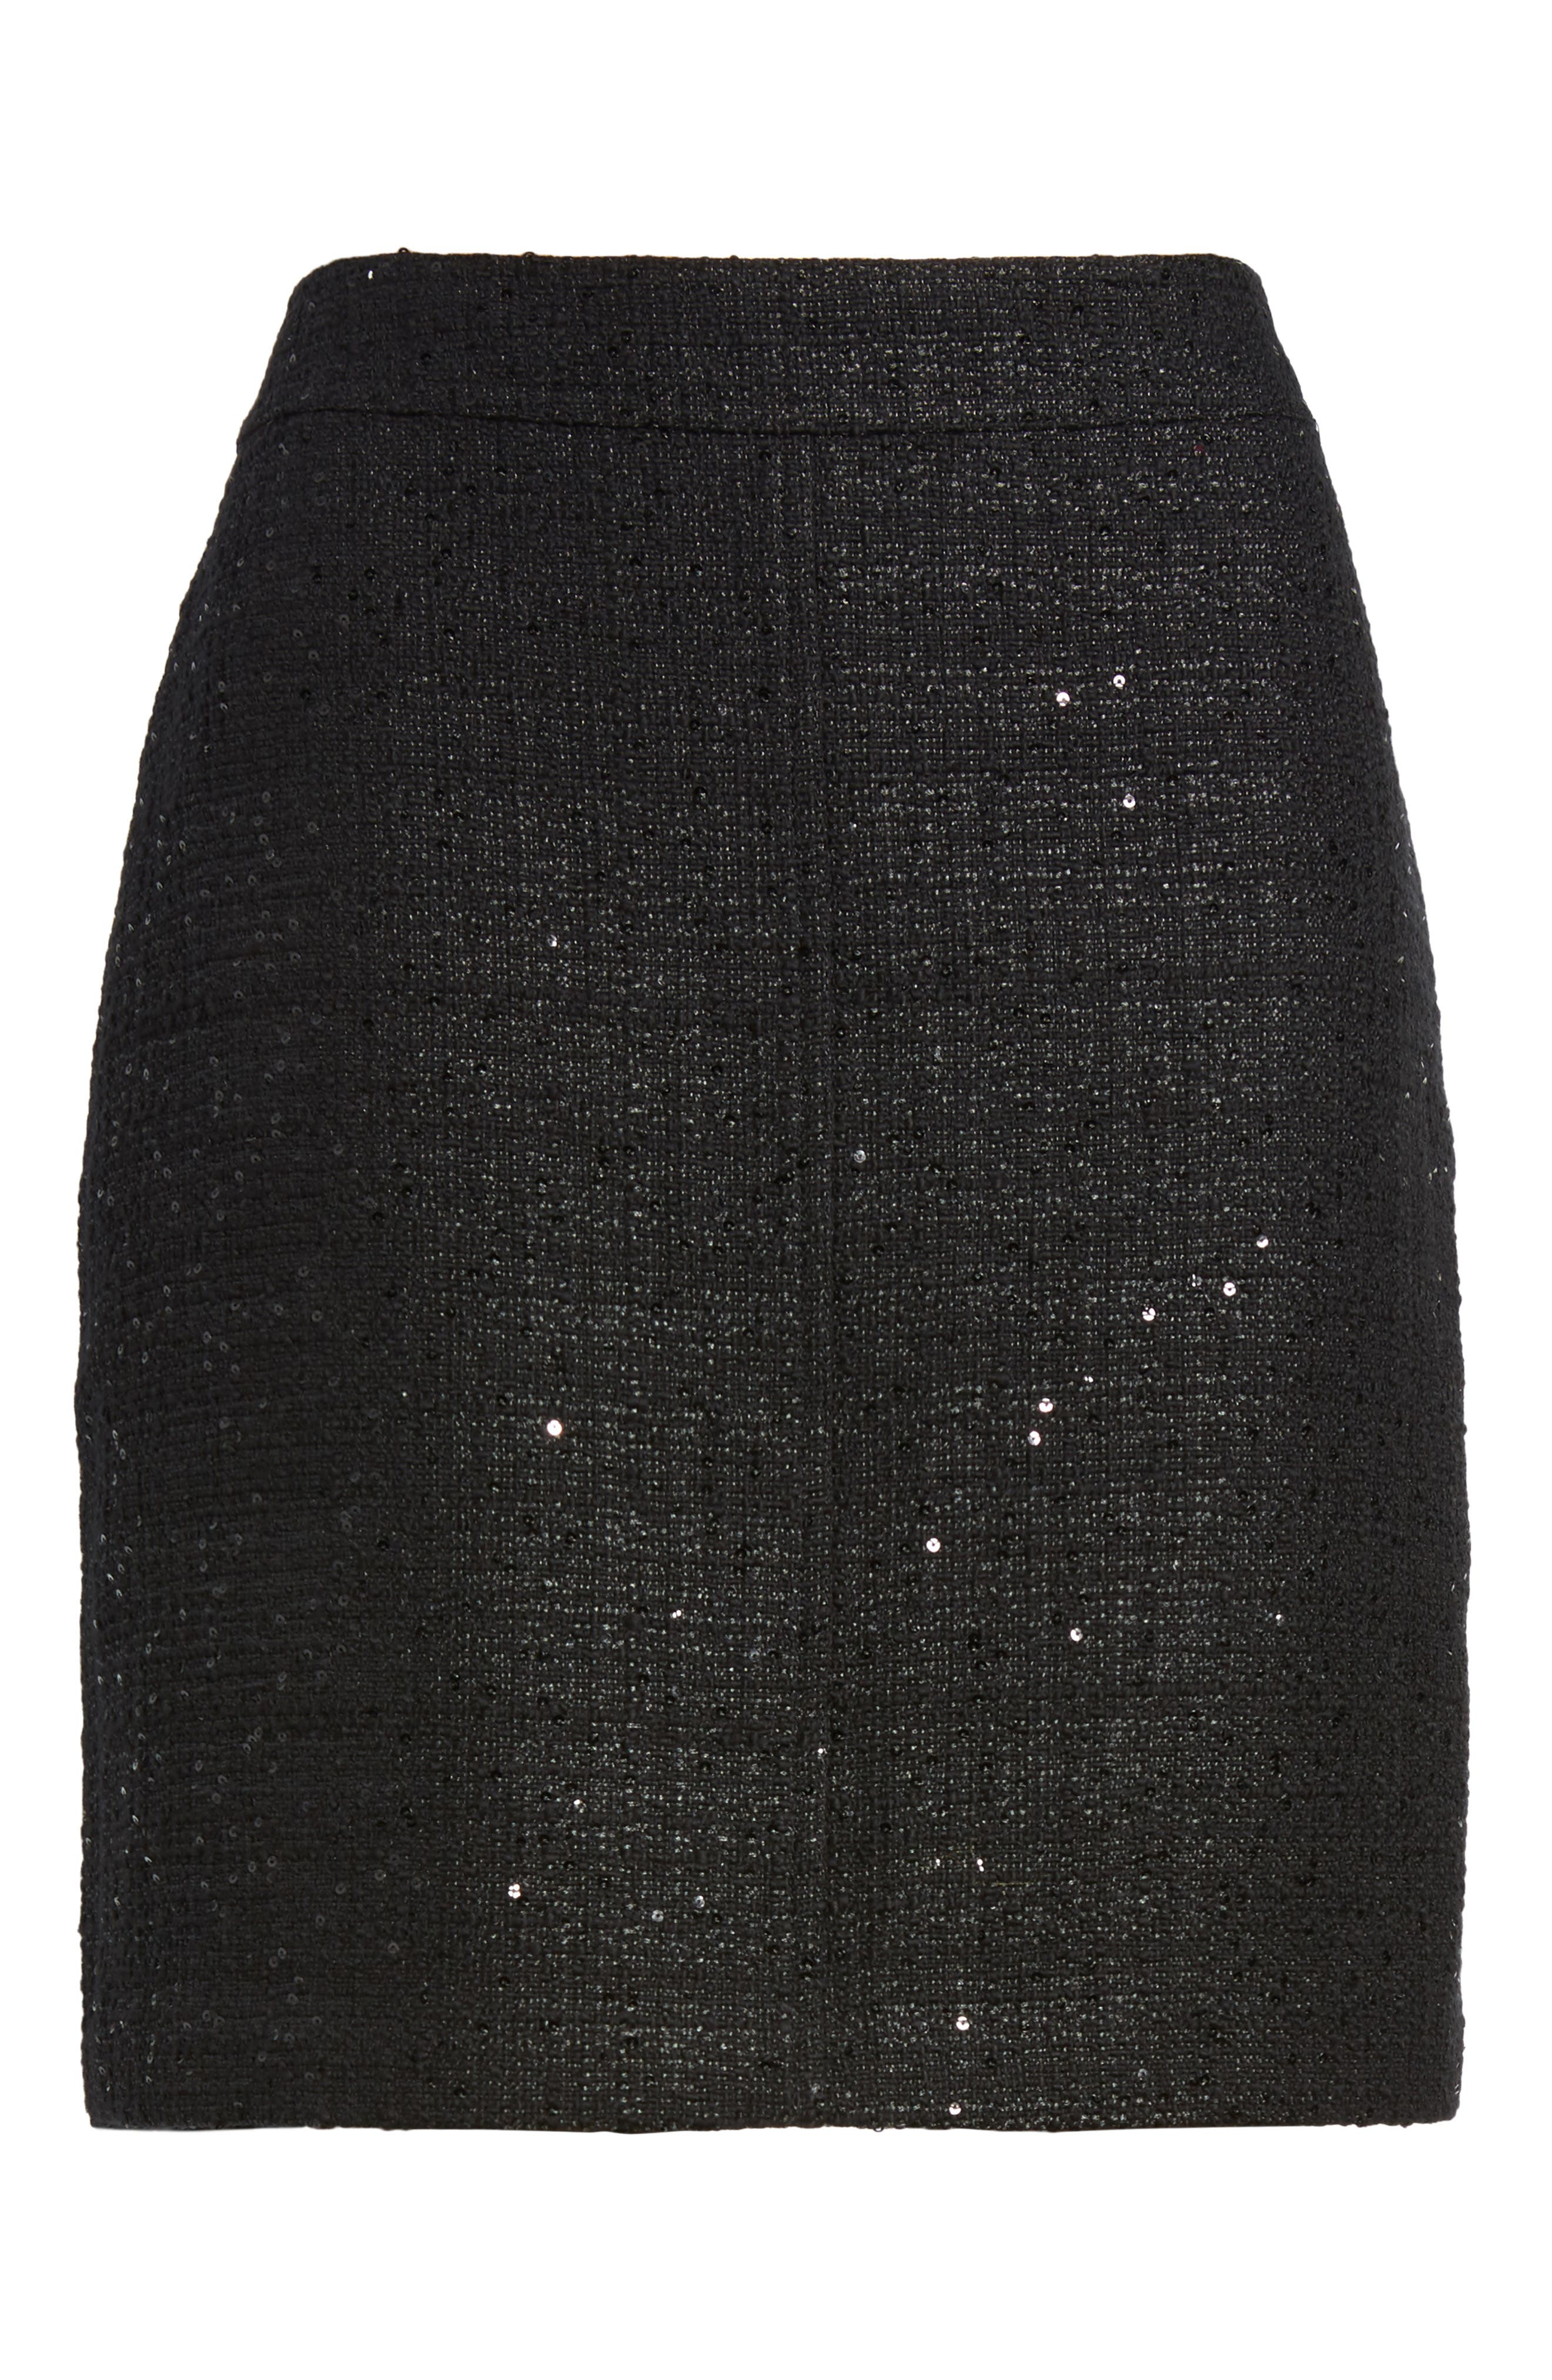 Sequin Tweed Skirt,                             Alternate thumbnail 6, color,                             Black/ Black